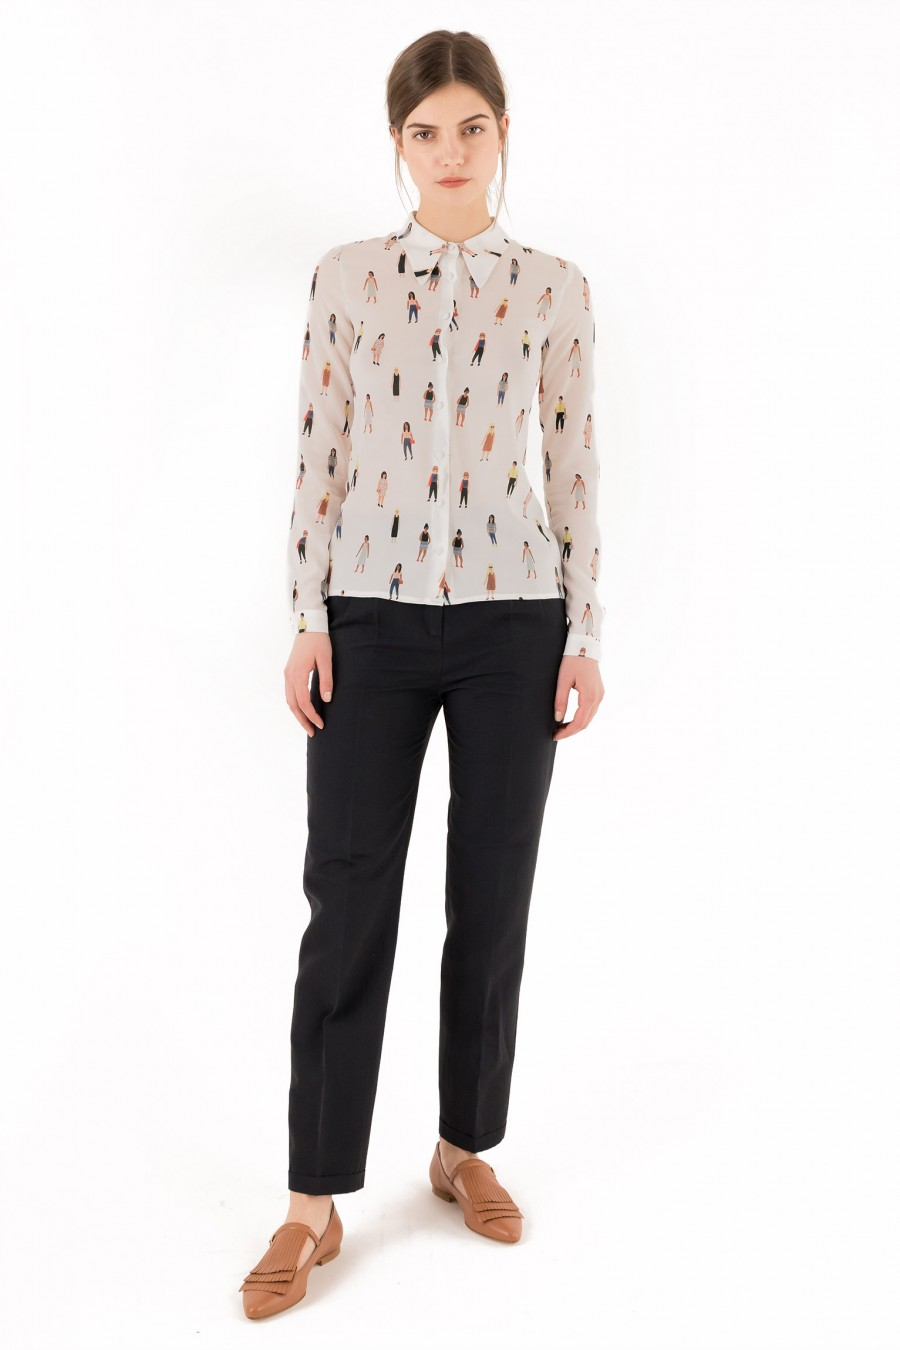 Camicia donna con pattern Kate Pugsley